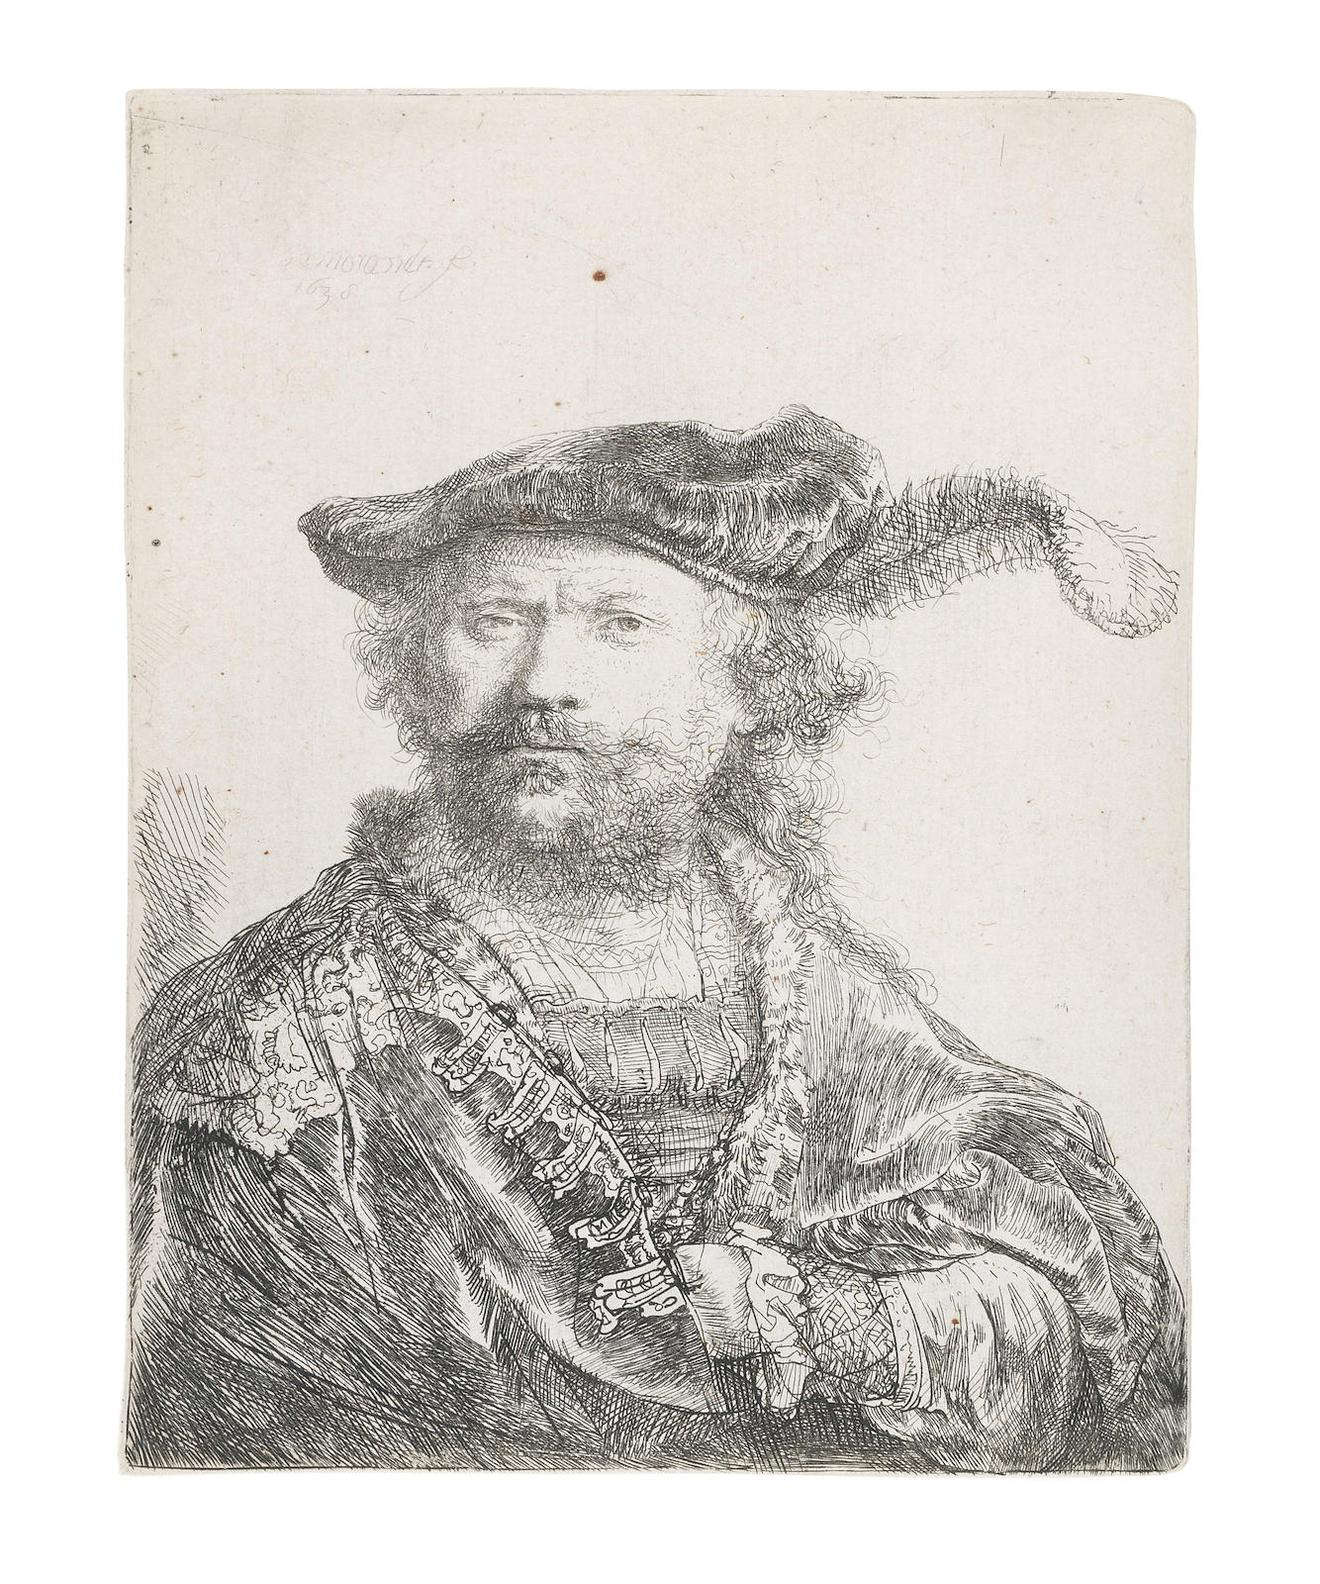 Rembrandt van Rijn-Self-Portrait In A Velvet Cap With Plume-1638